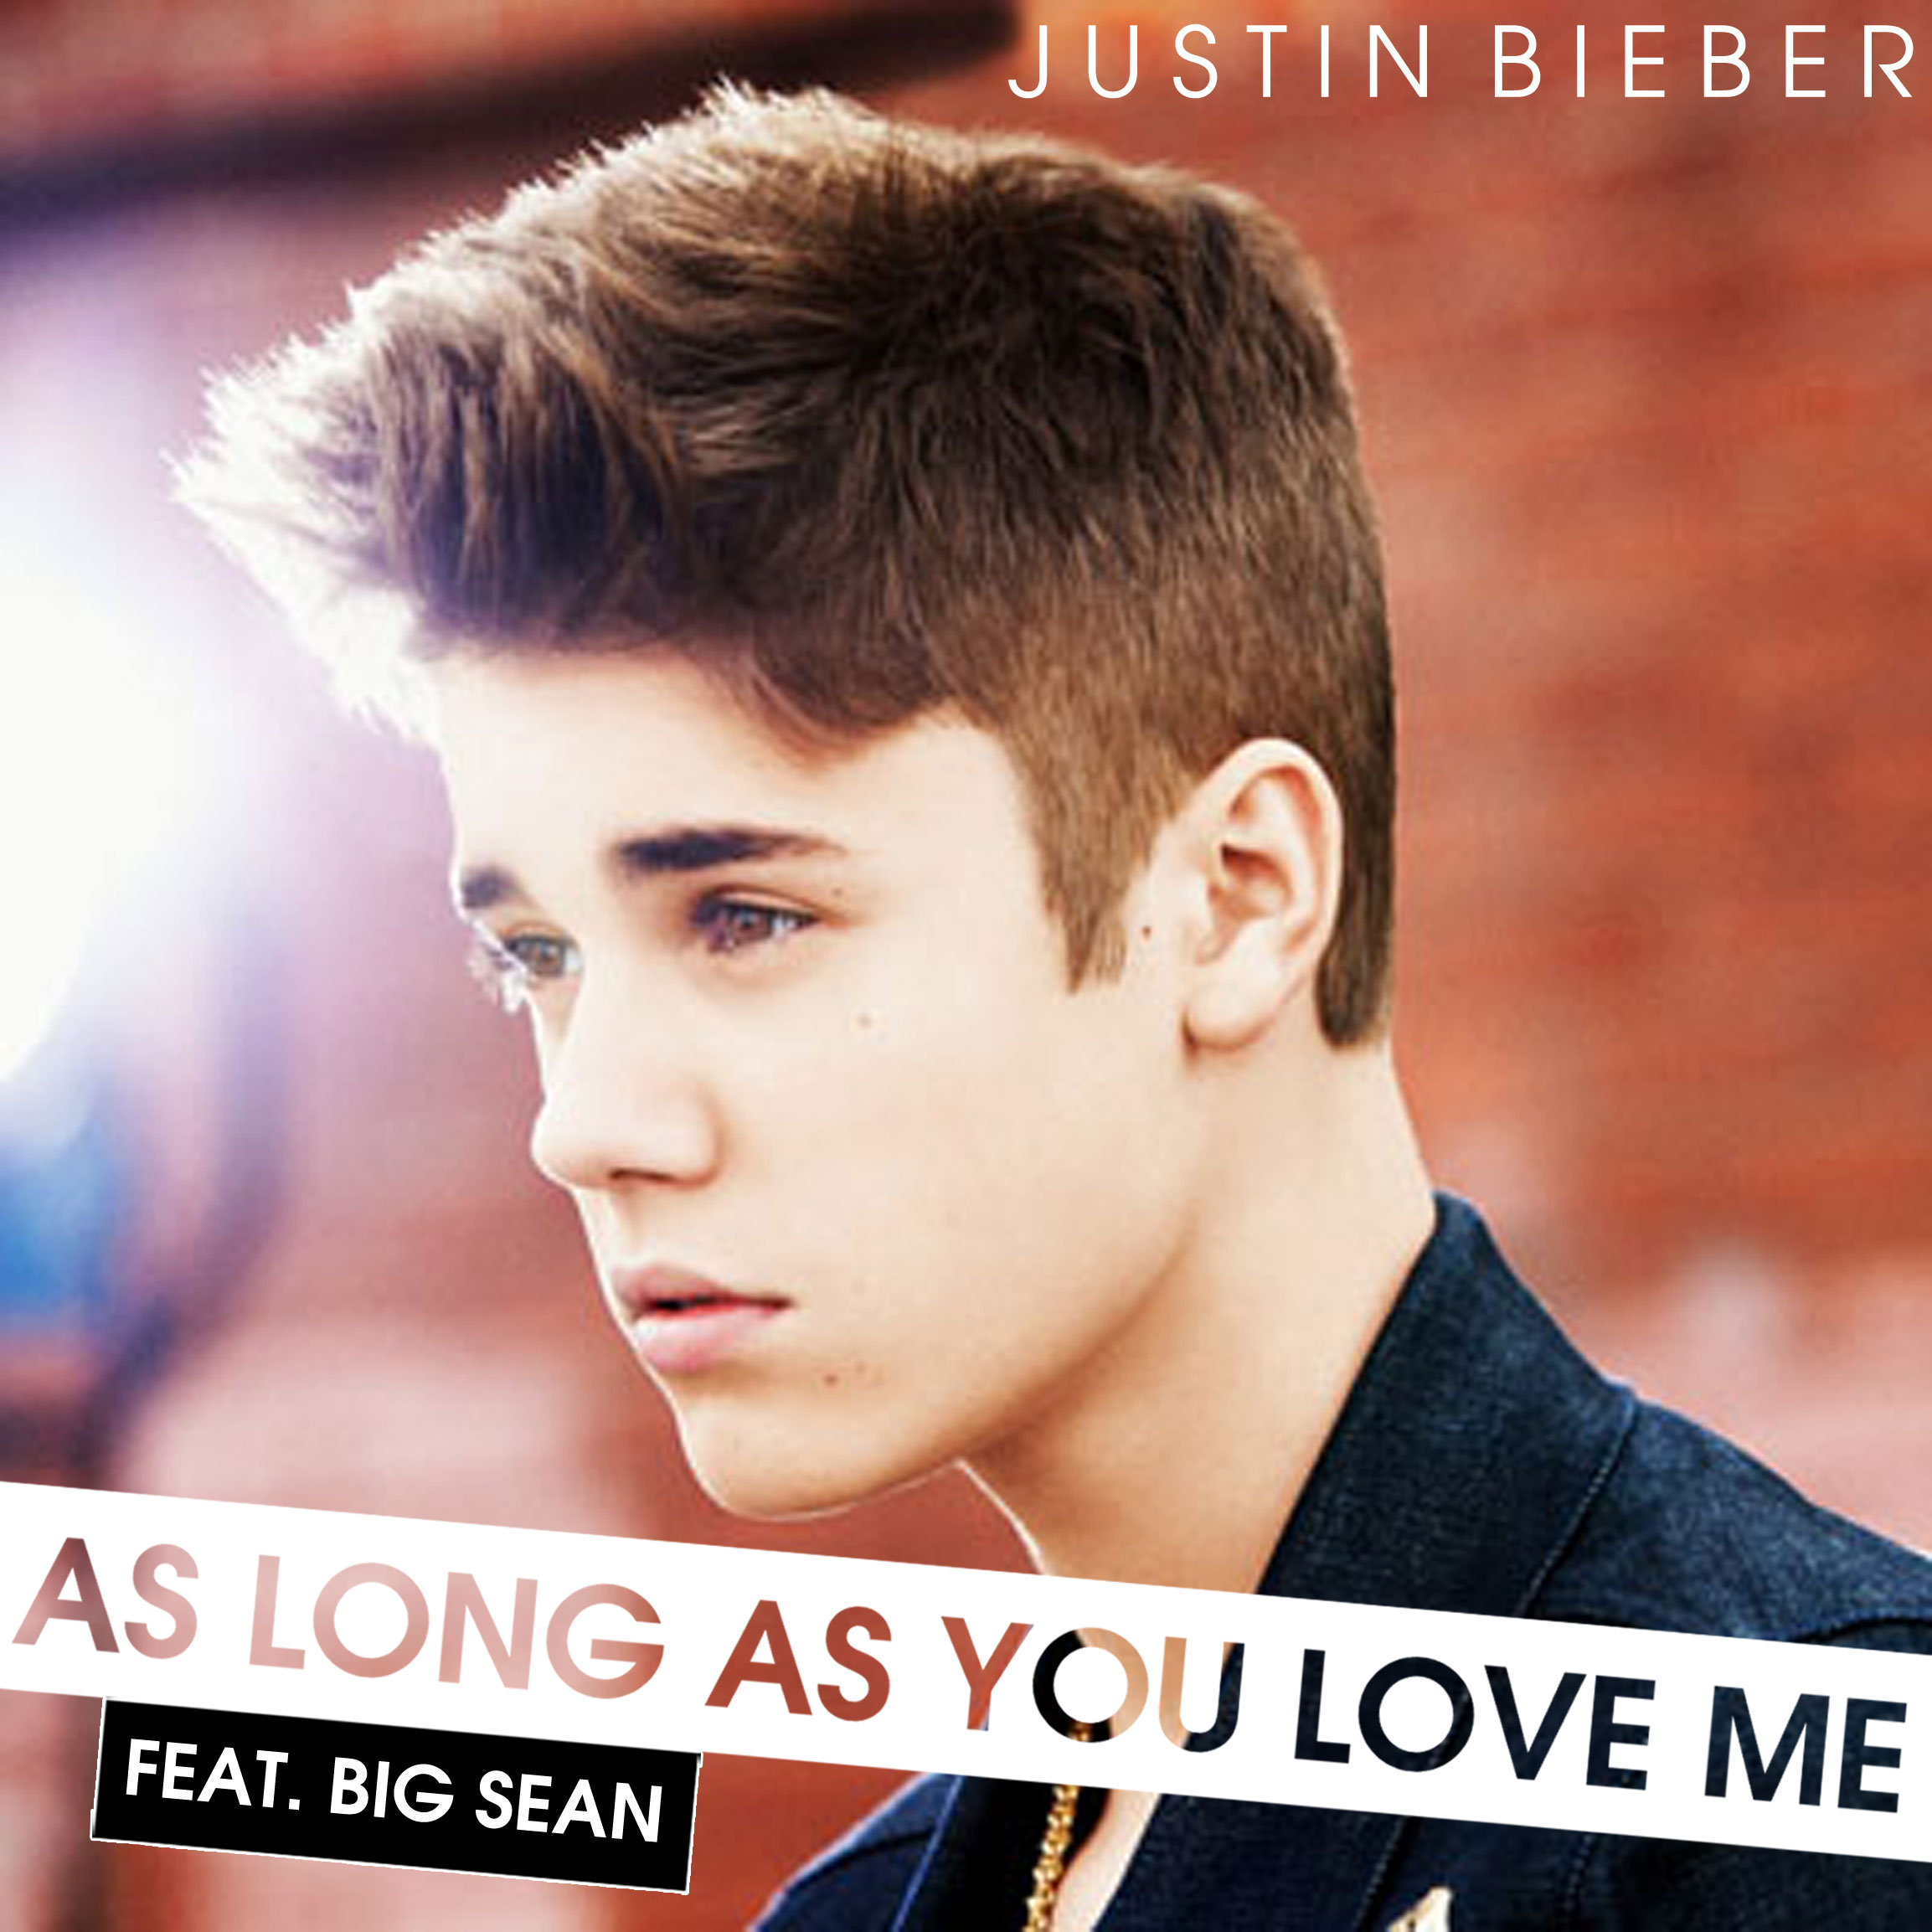 Believe (Justin Bieber) images Justin Bieber - As Long As You Love Me HD wallpaper and ...